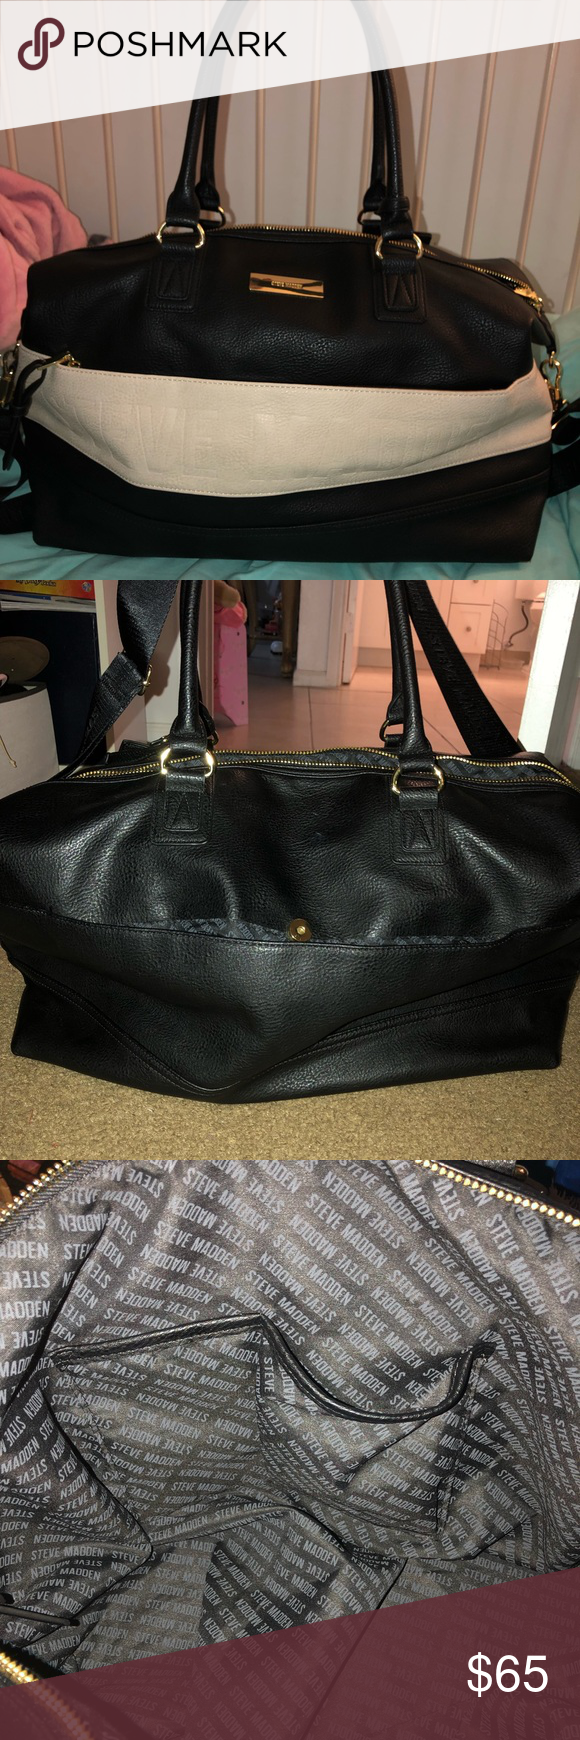 96af6b86d7d Steve Madden Duffle Bag Excellent condition. Used about 5 times. No signs of  wear